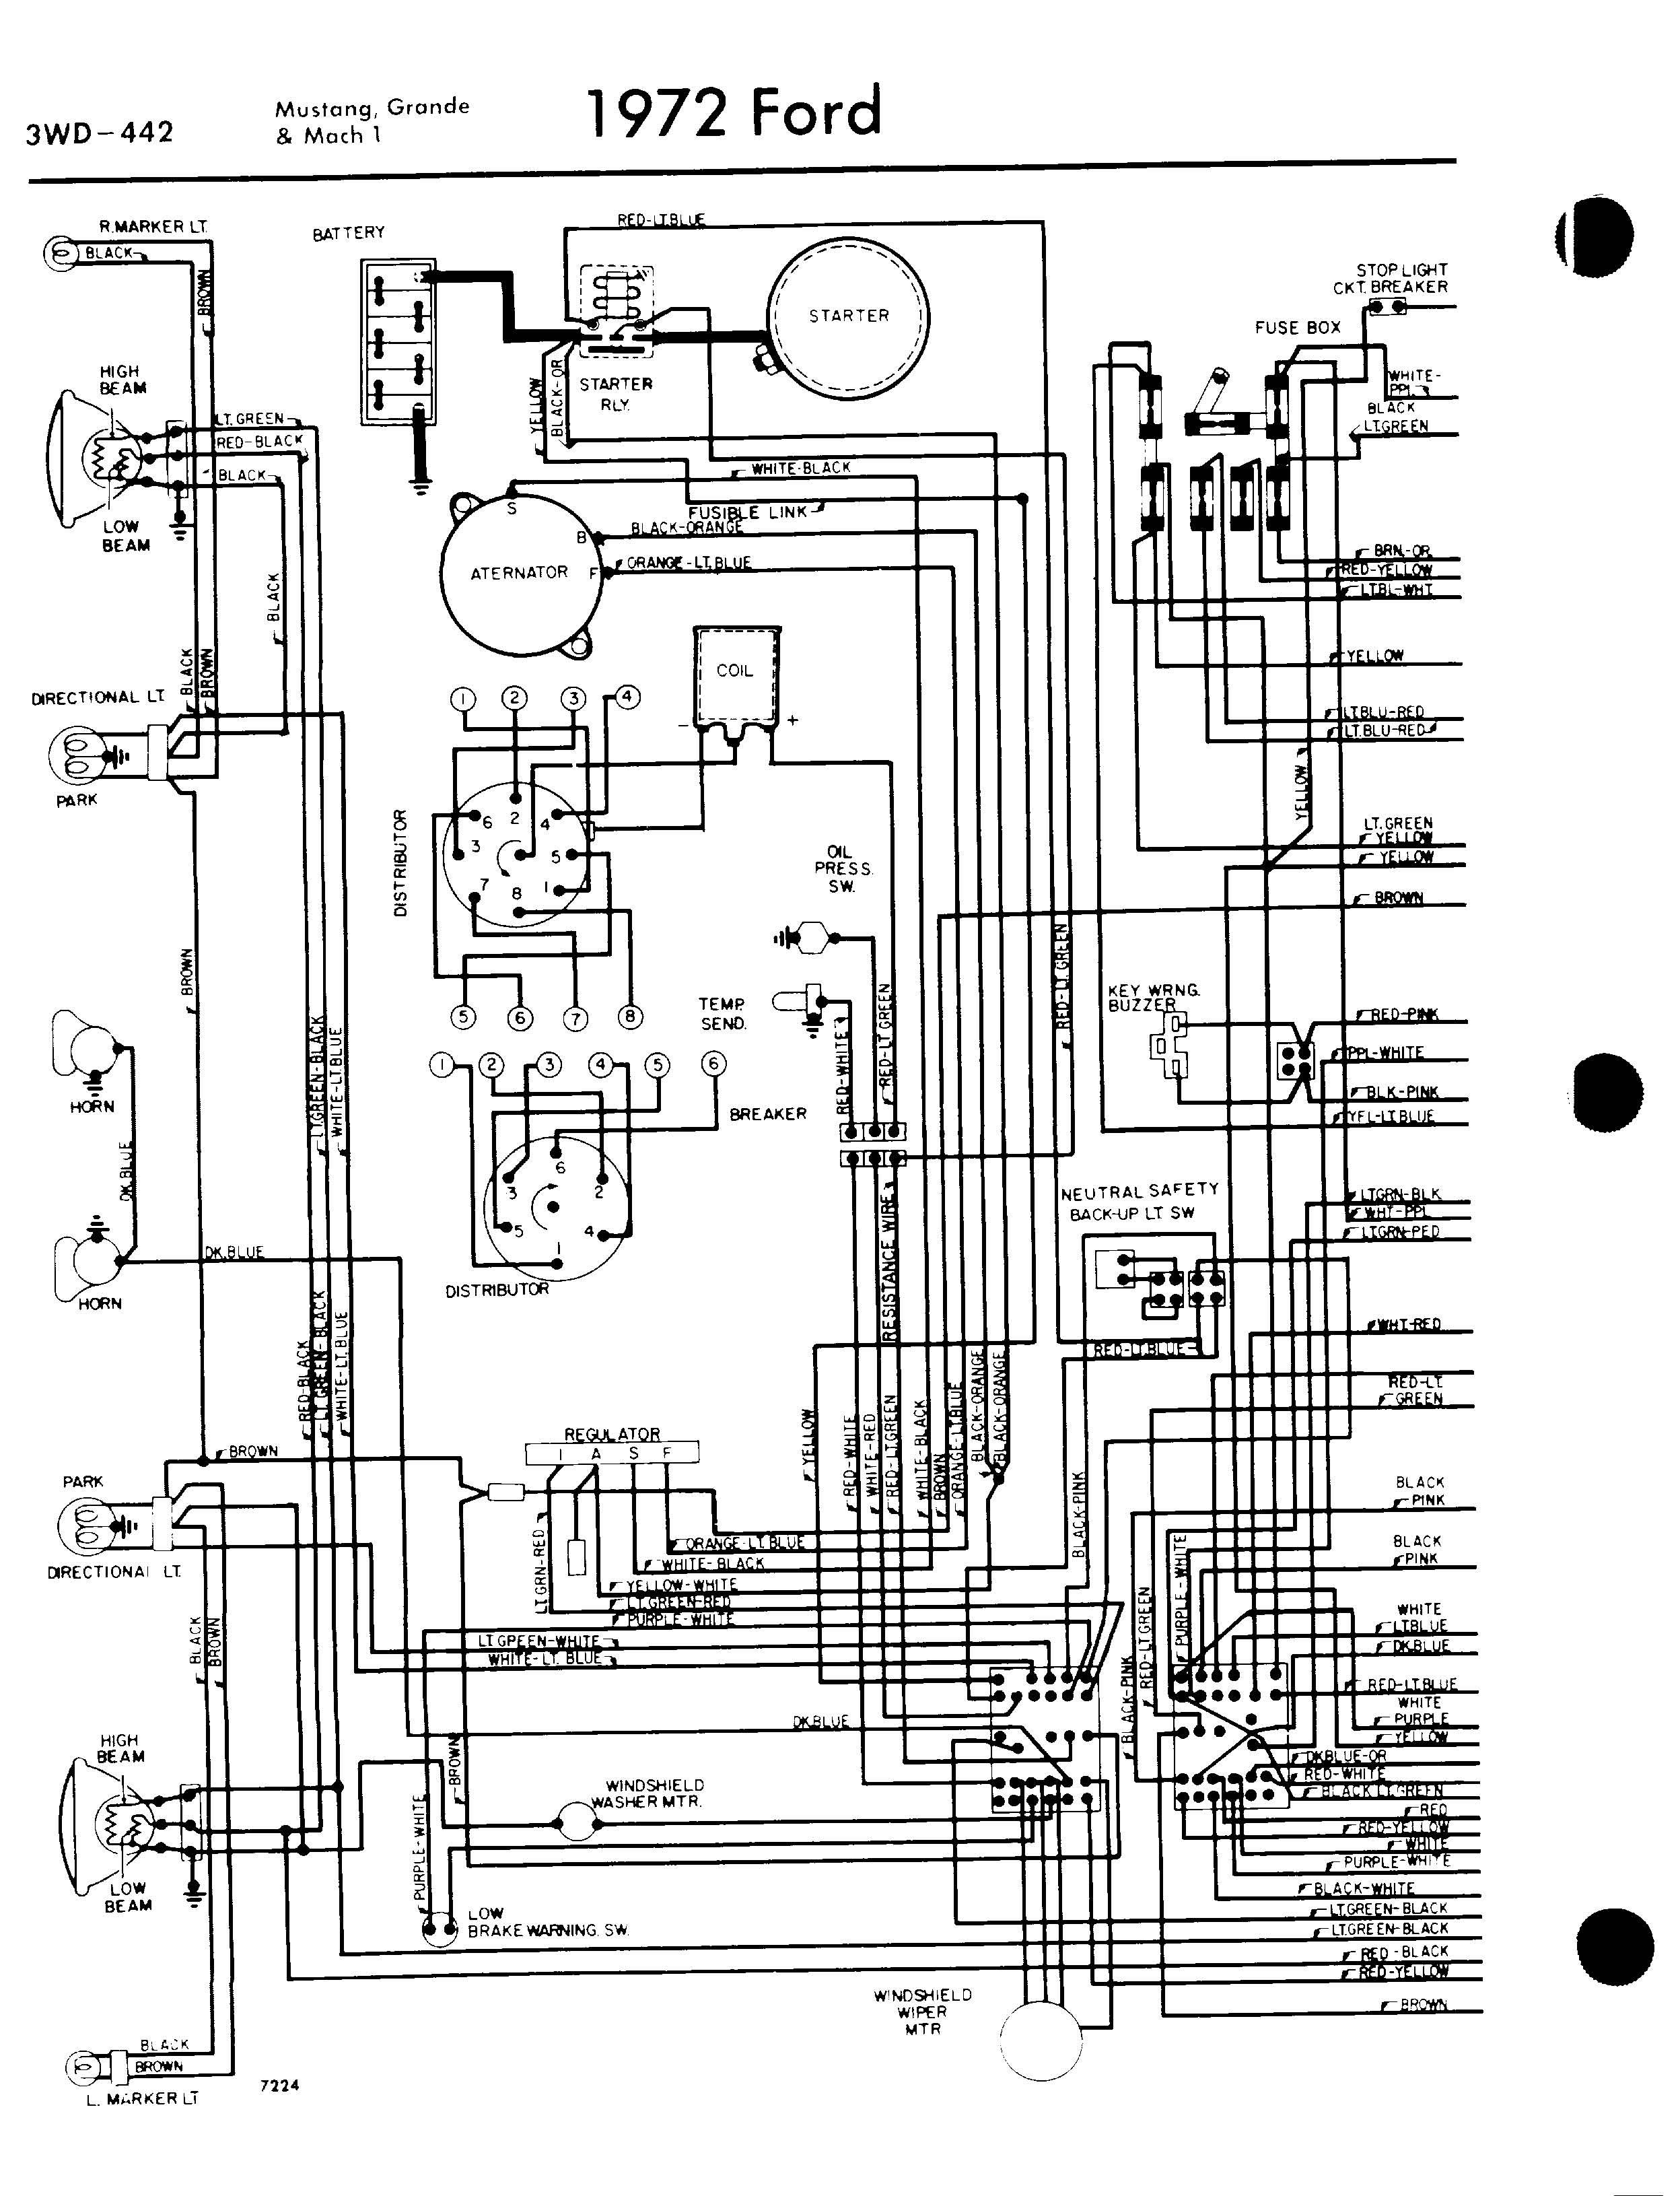 71af7a58e095e6a7716b32f1b23e8bd2 72 mach1 alternator wire harness diagram yahoo search results 65 mustang 289 alternator wiring diagram at gsmx.co